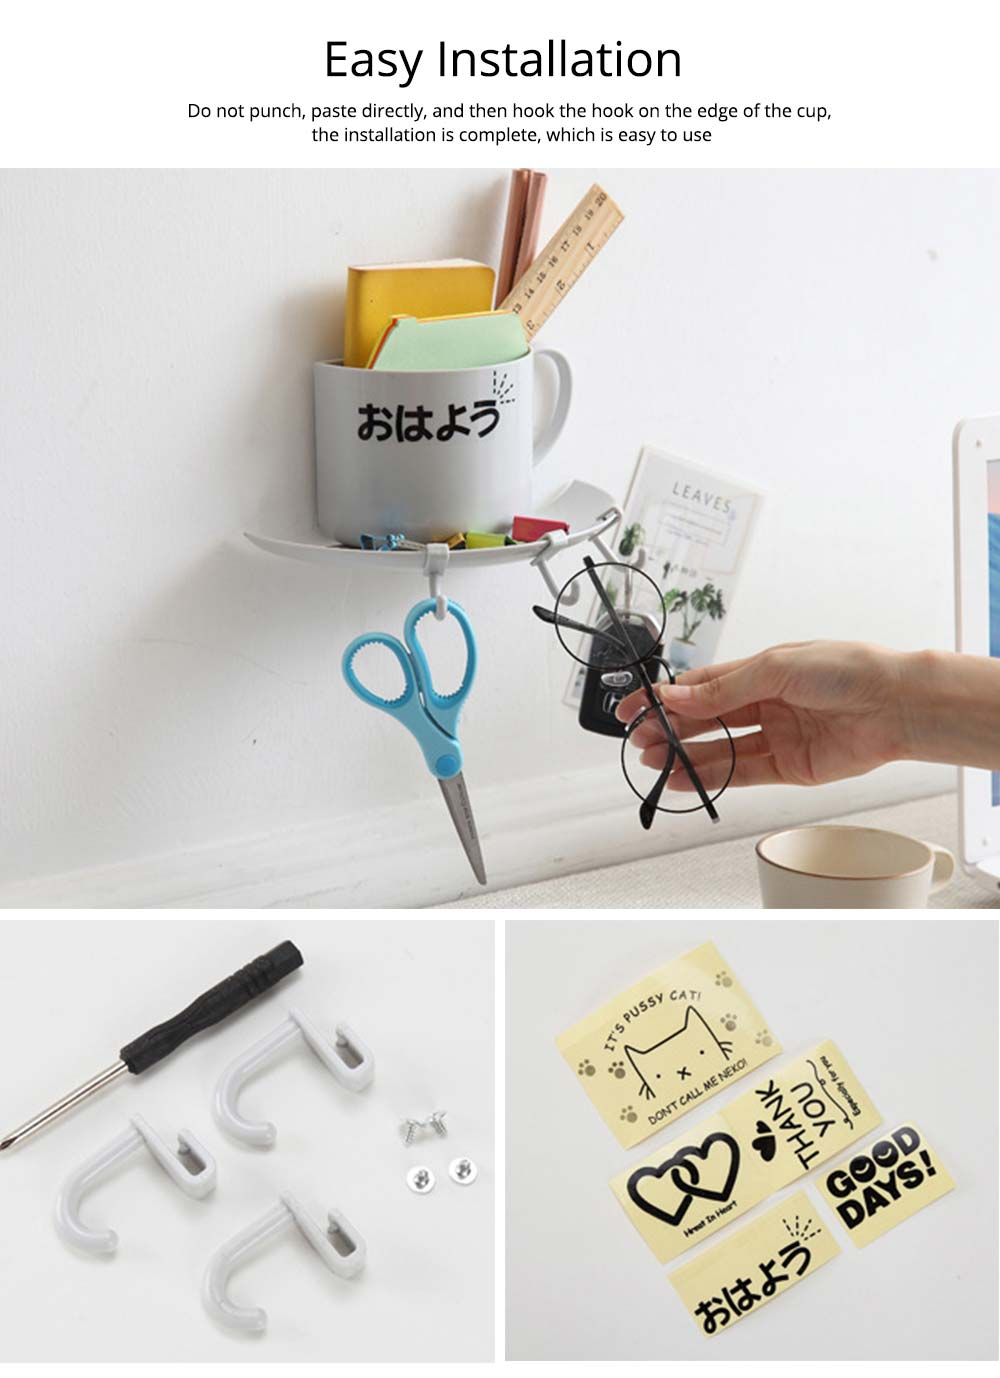 Bathroom Free Punching Adhesive Paste Pendant, Toothbrush Holder Toothpaste Holder Pendant, Cup Type Wall Mount Rack 3